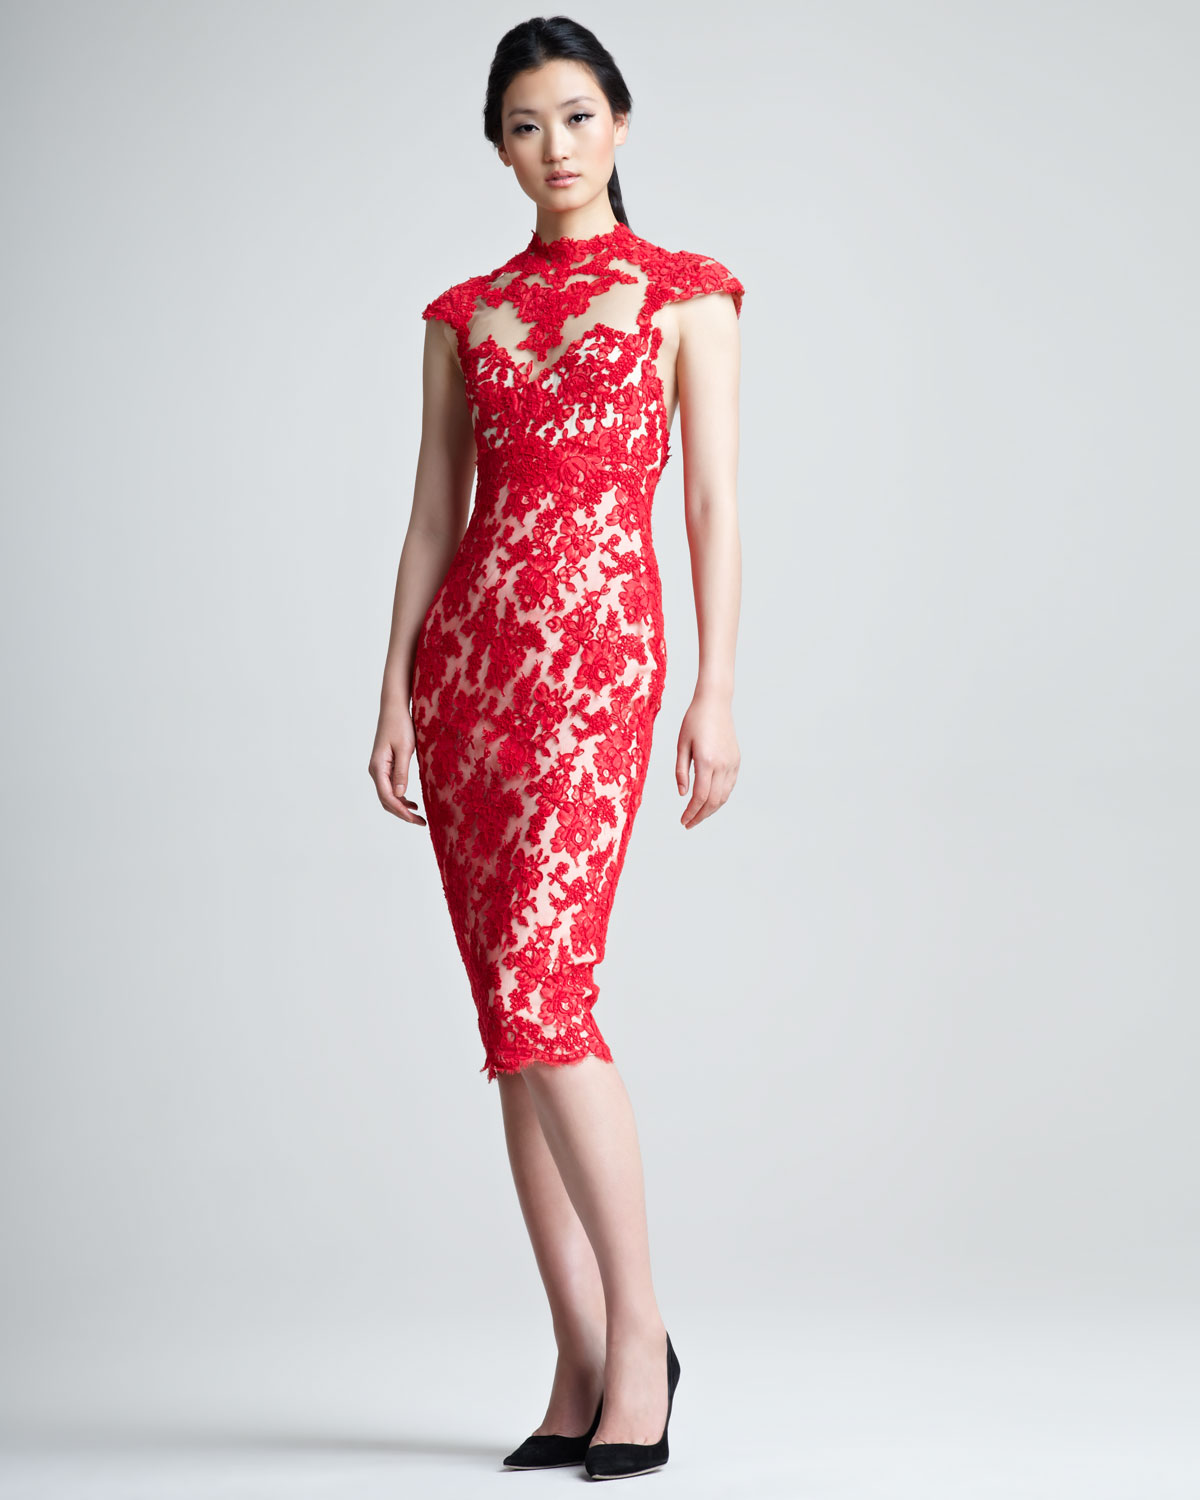 Lyst - Marchesa Lace Cocktail Dress in Red